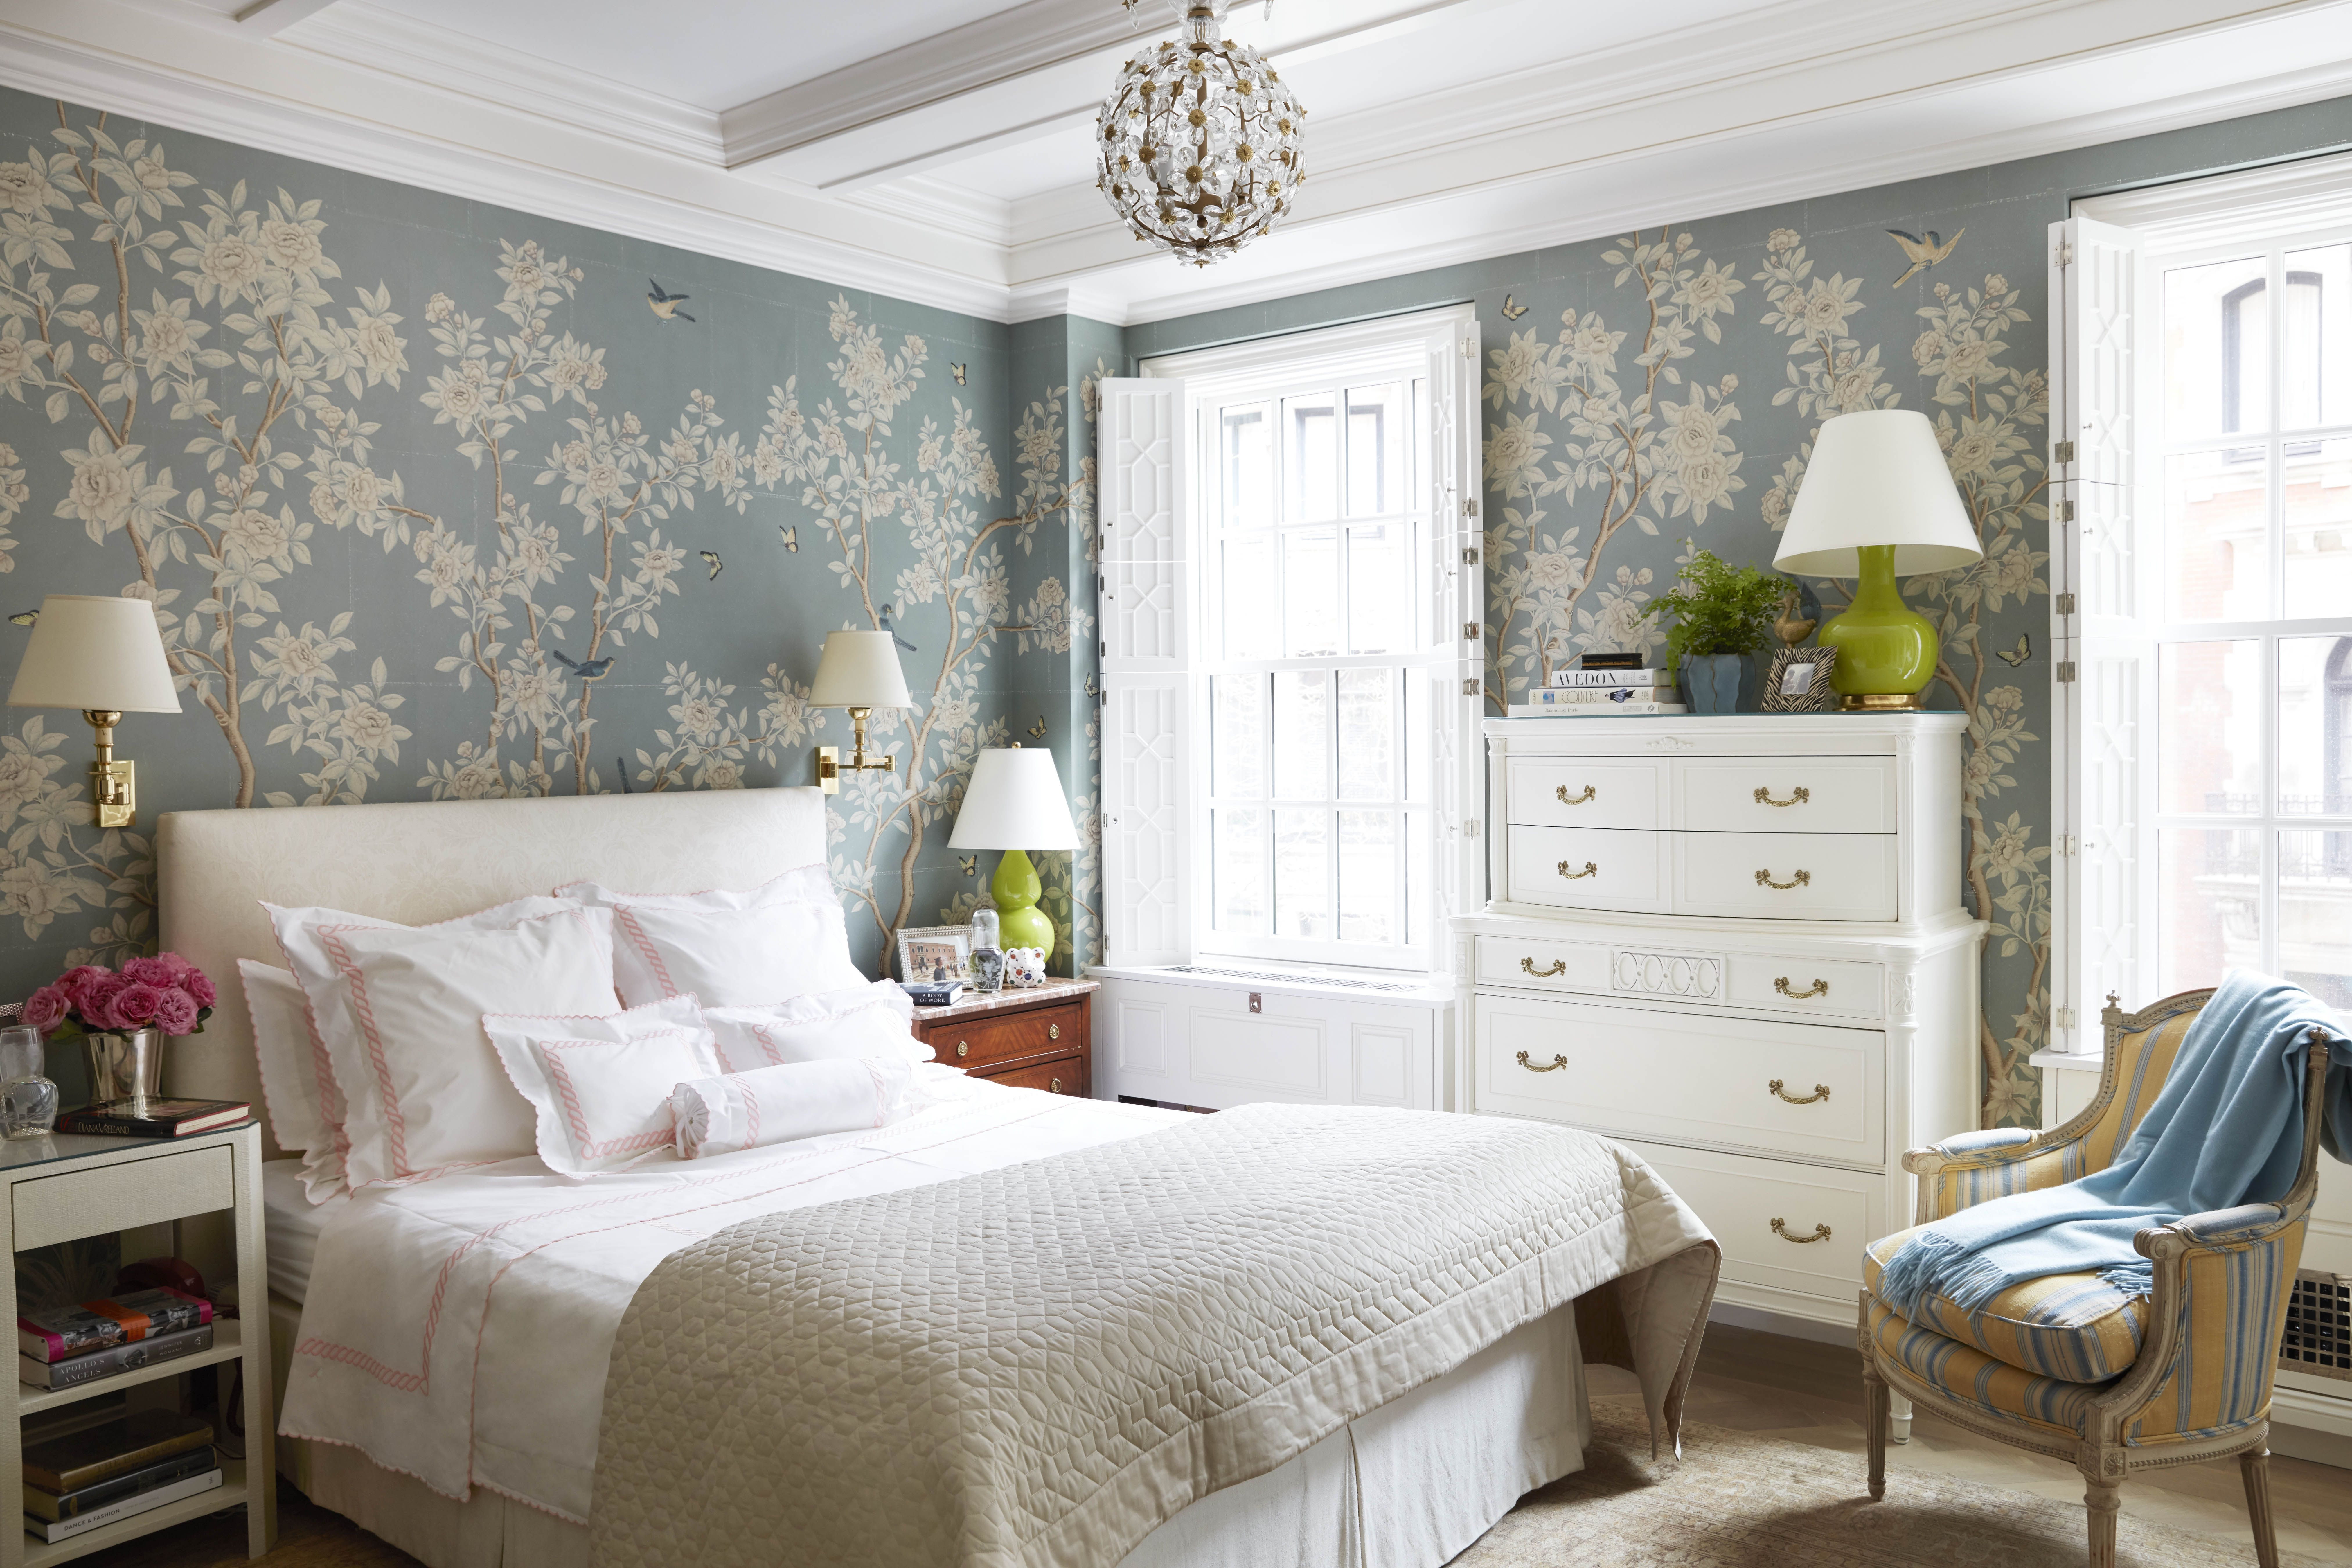 10 Best Bedroom Wallpaper Ideas - Designer Wallpaper for Bedrooms